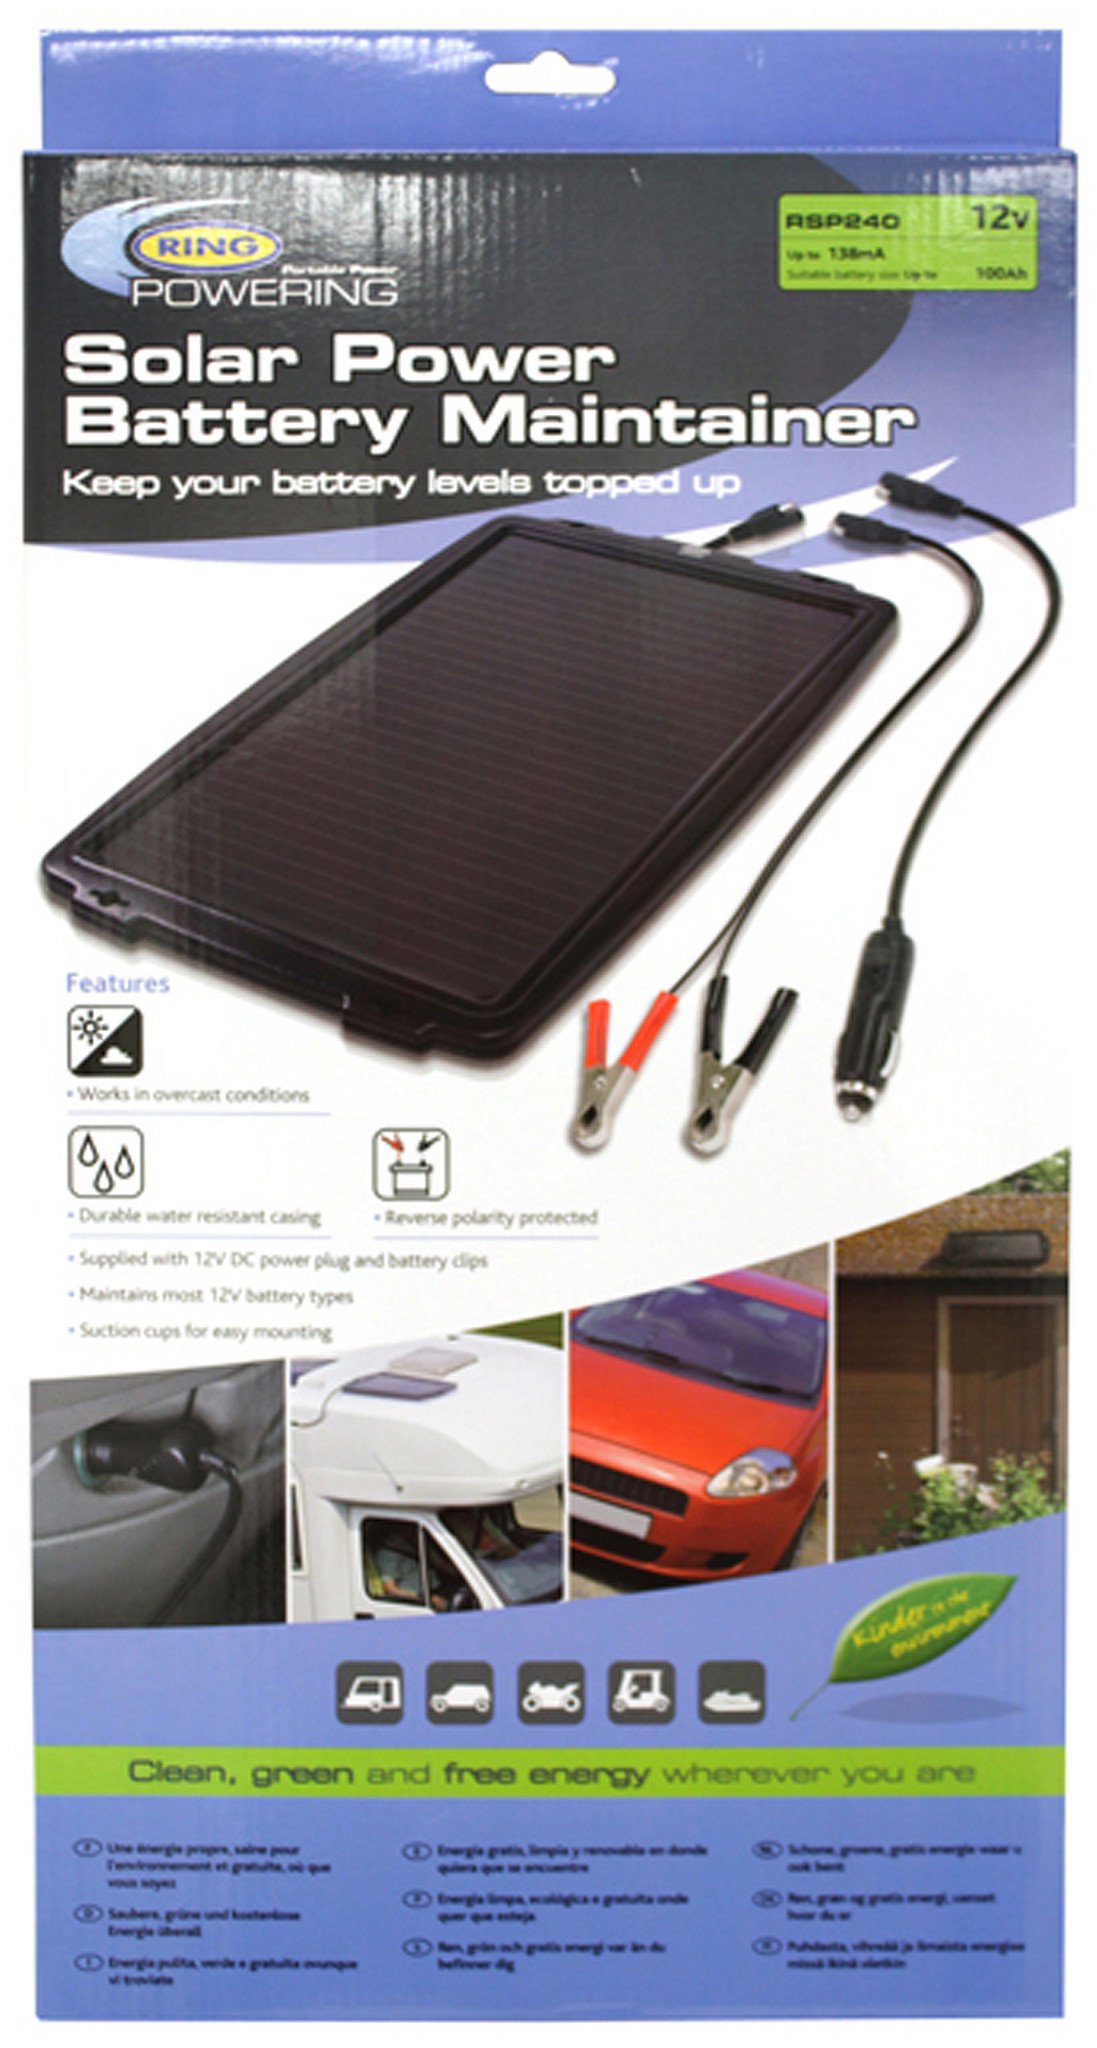 Ring Acculader Solar Rsp240